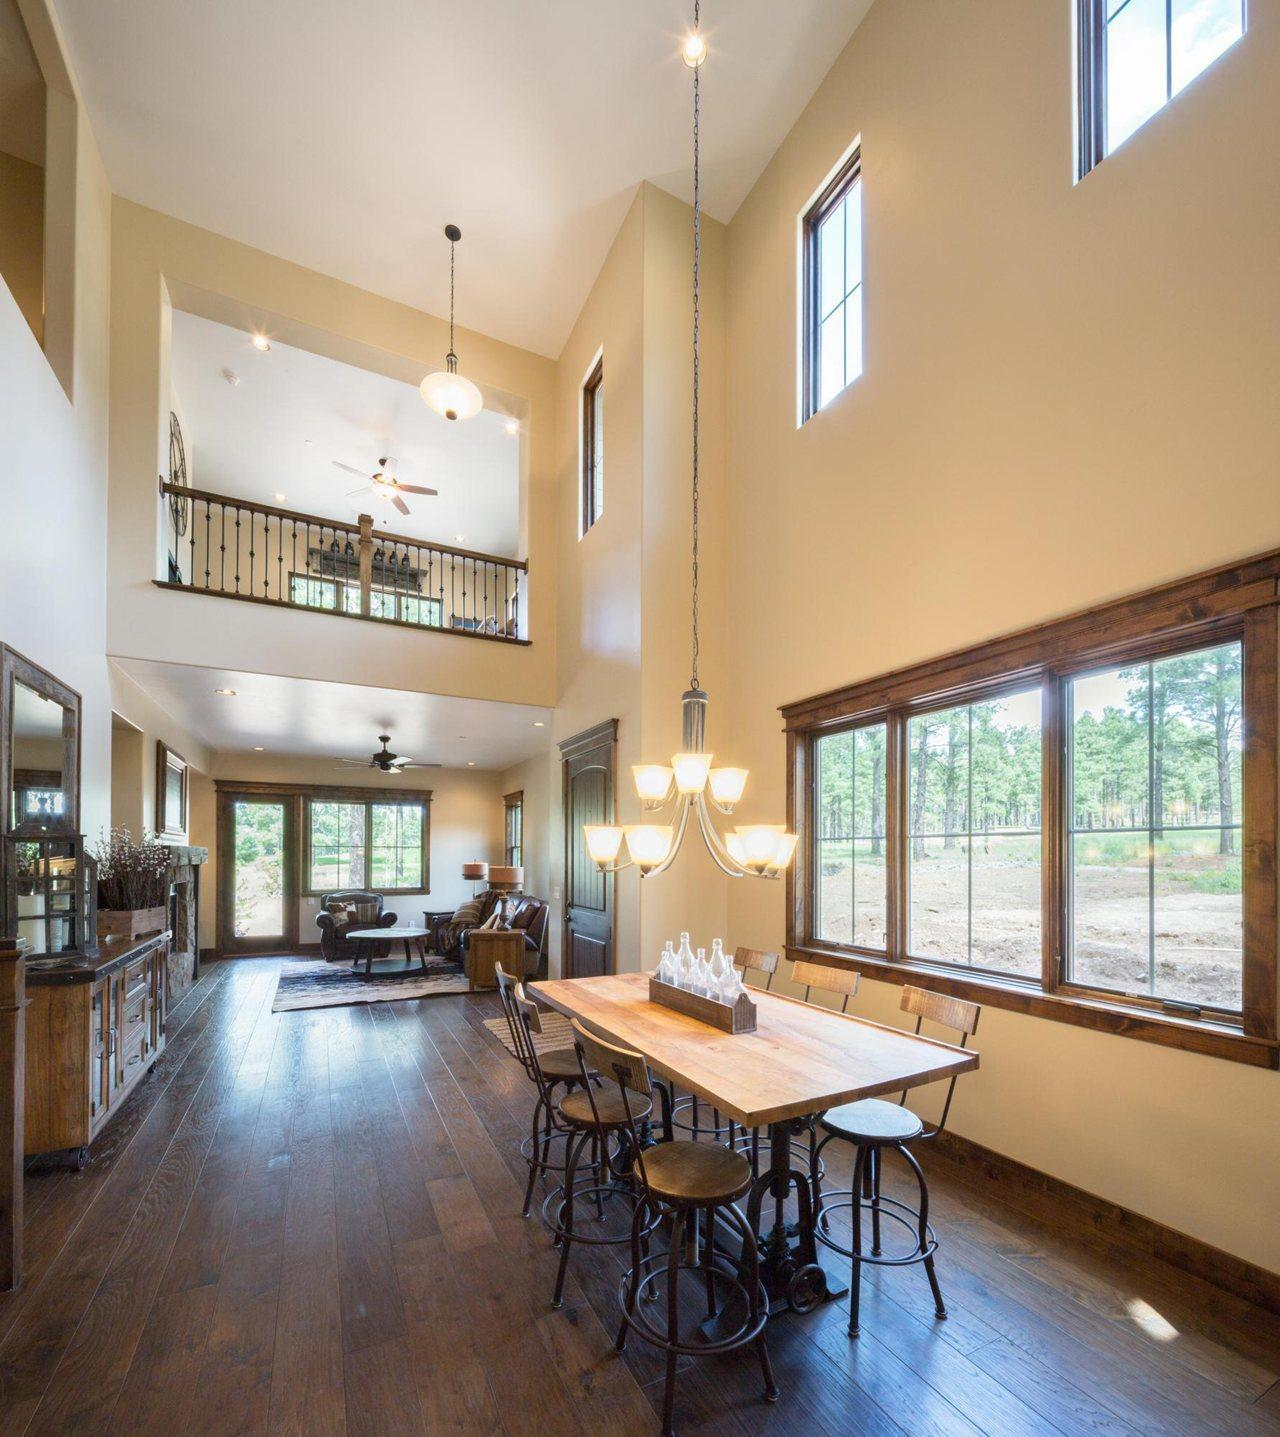 Living Area featured in the Aspen Ridge Plan 2 By Capstone Homes in Flagstaff, AZ